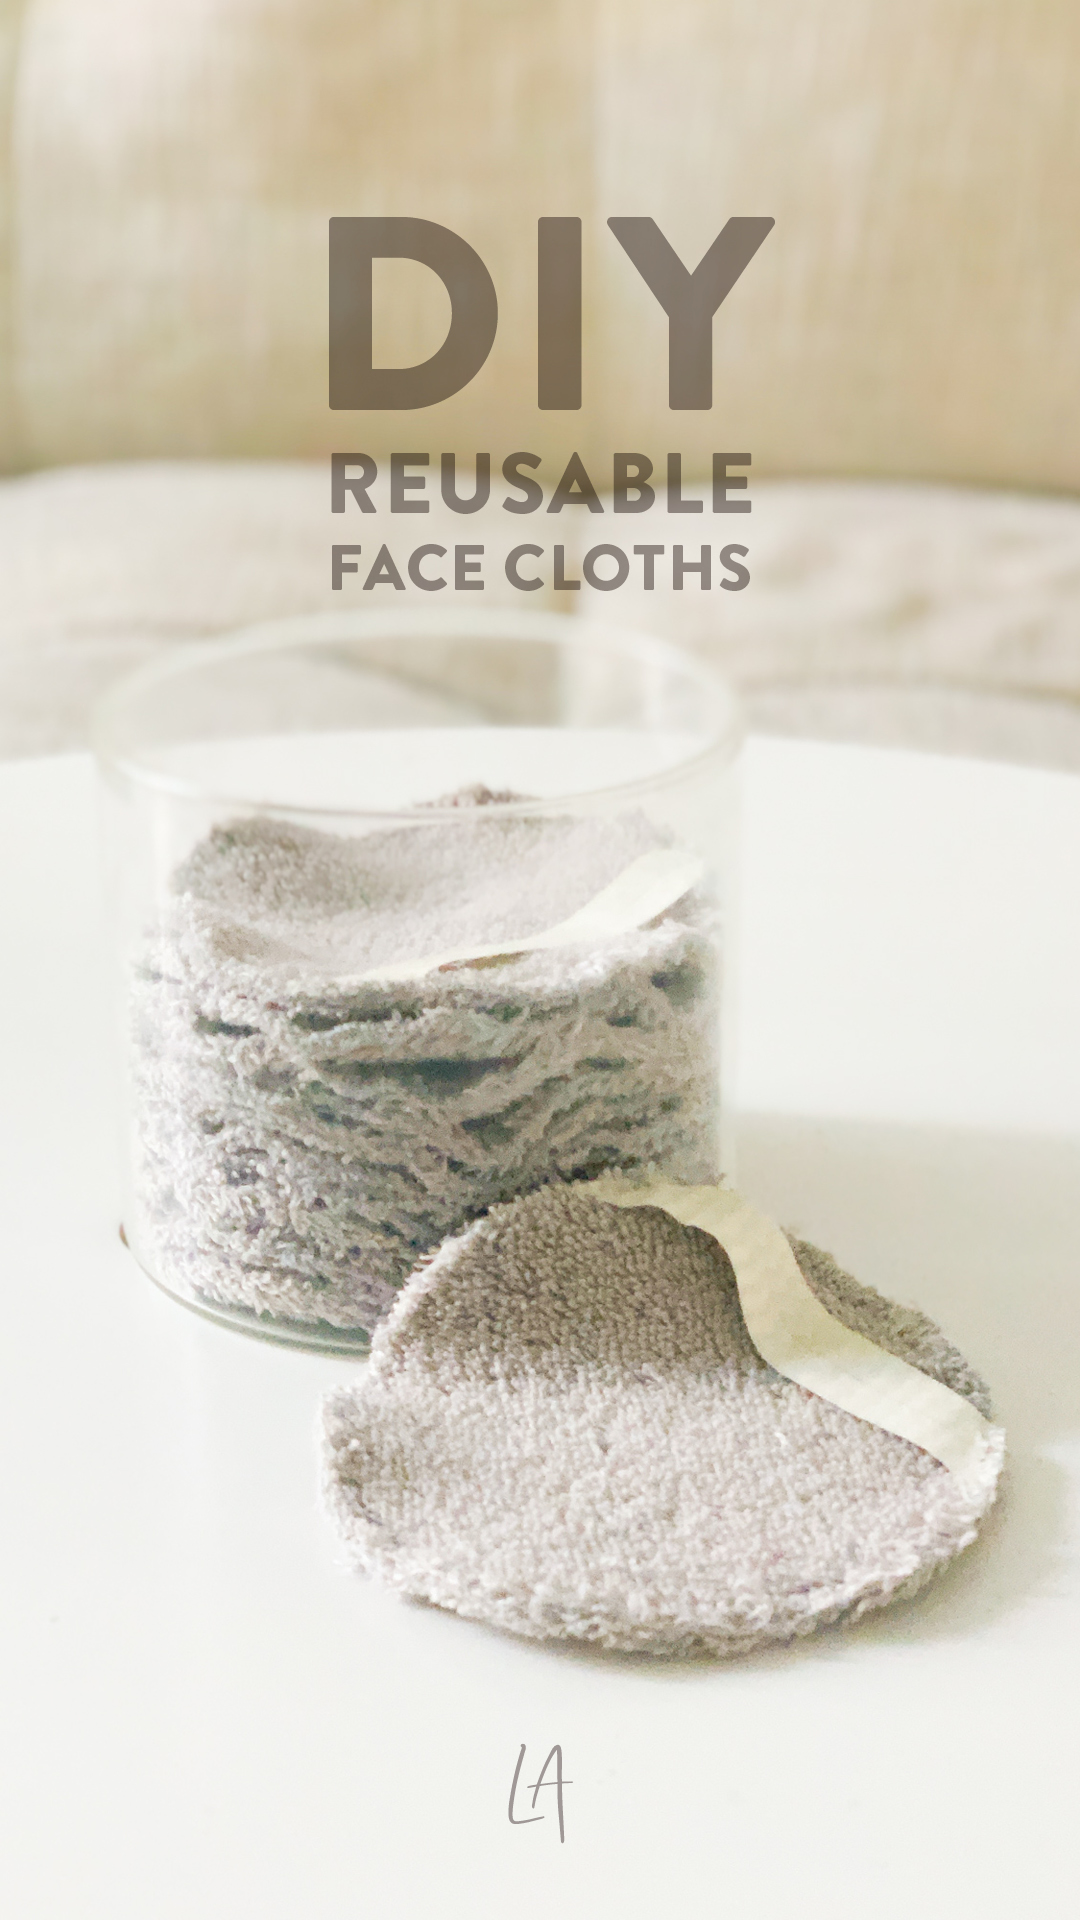 How I made reusable face cloths at home